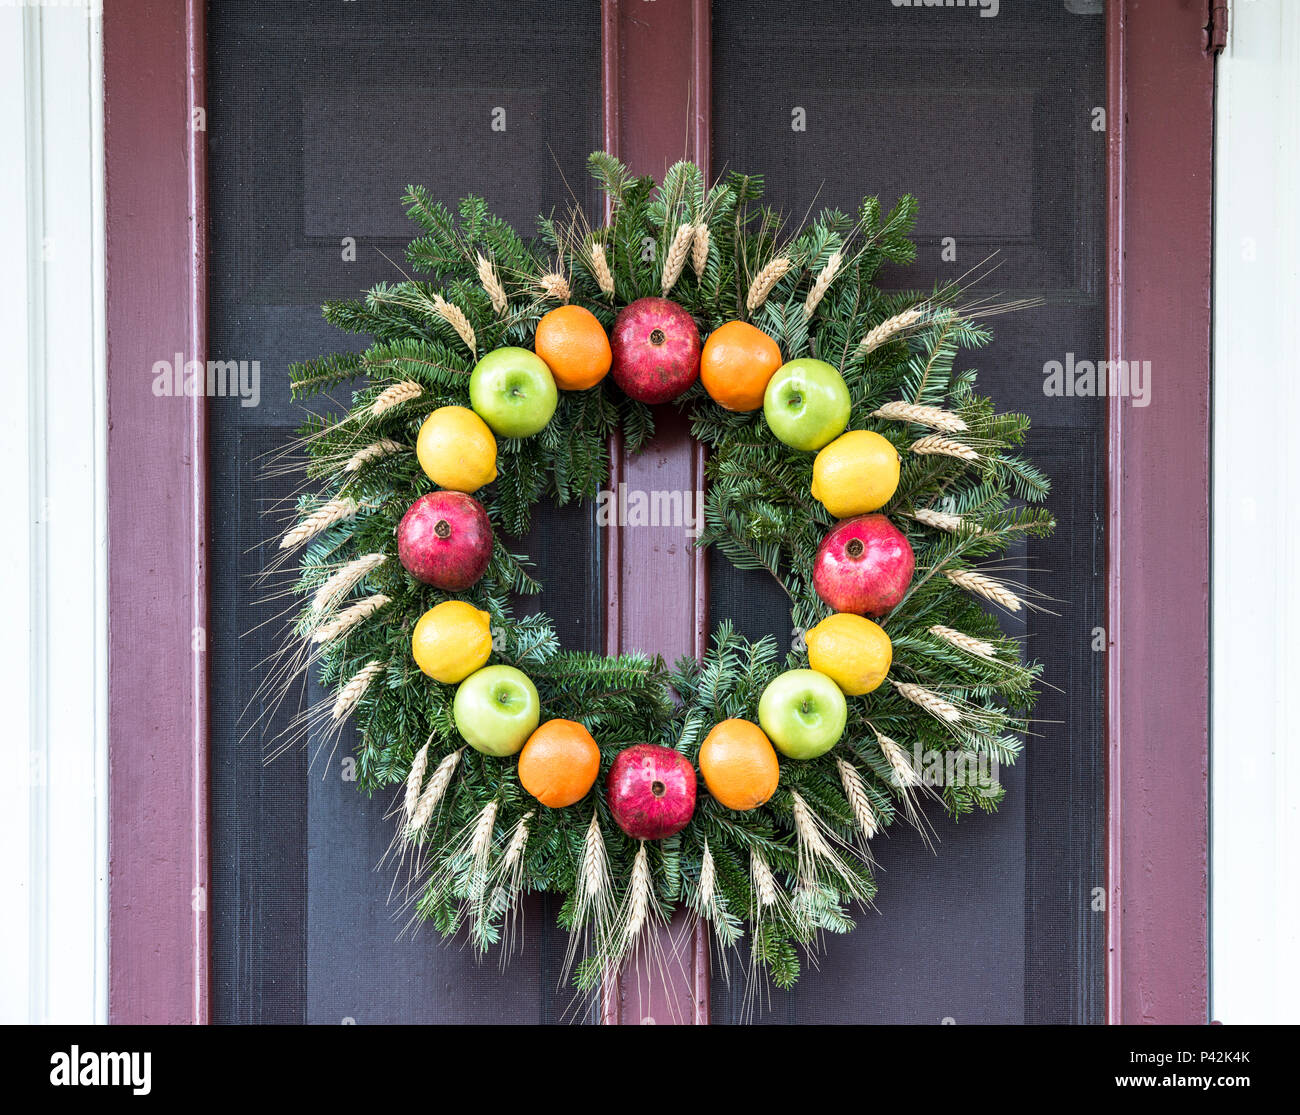 Christmas Wreath Decoration Made Of Fruit Including Red And Green